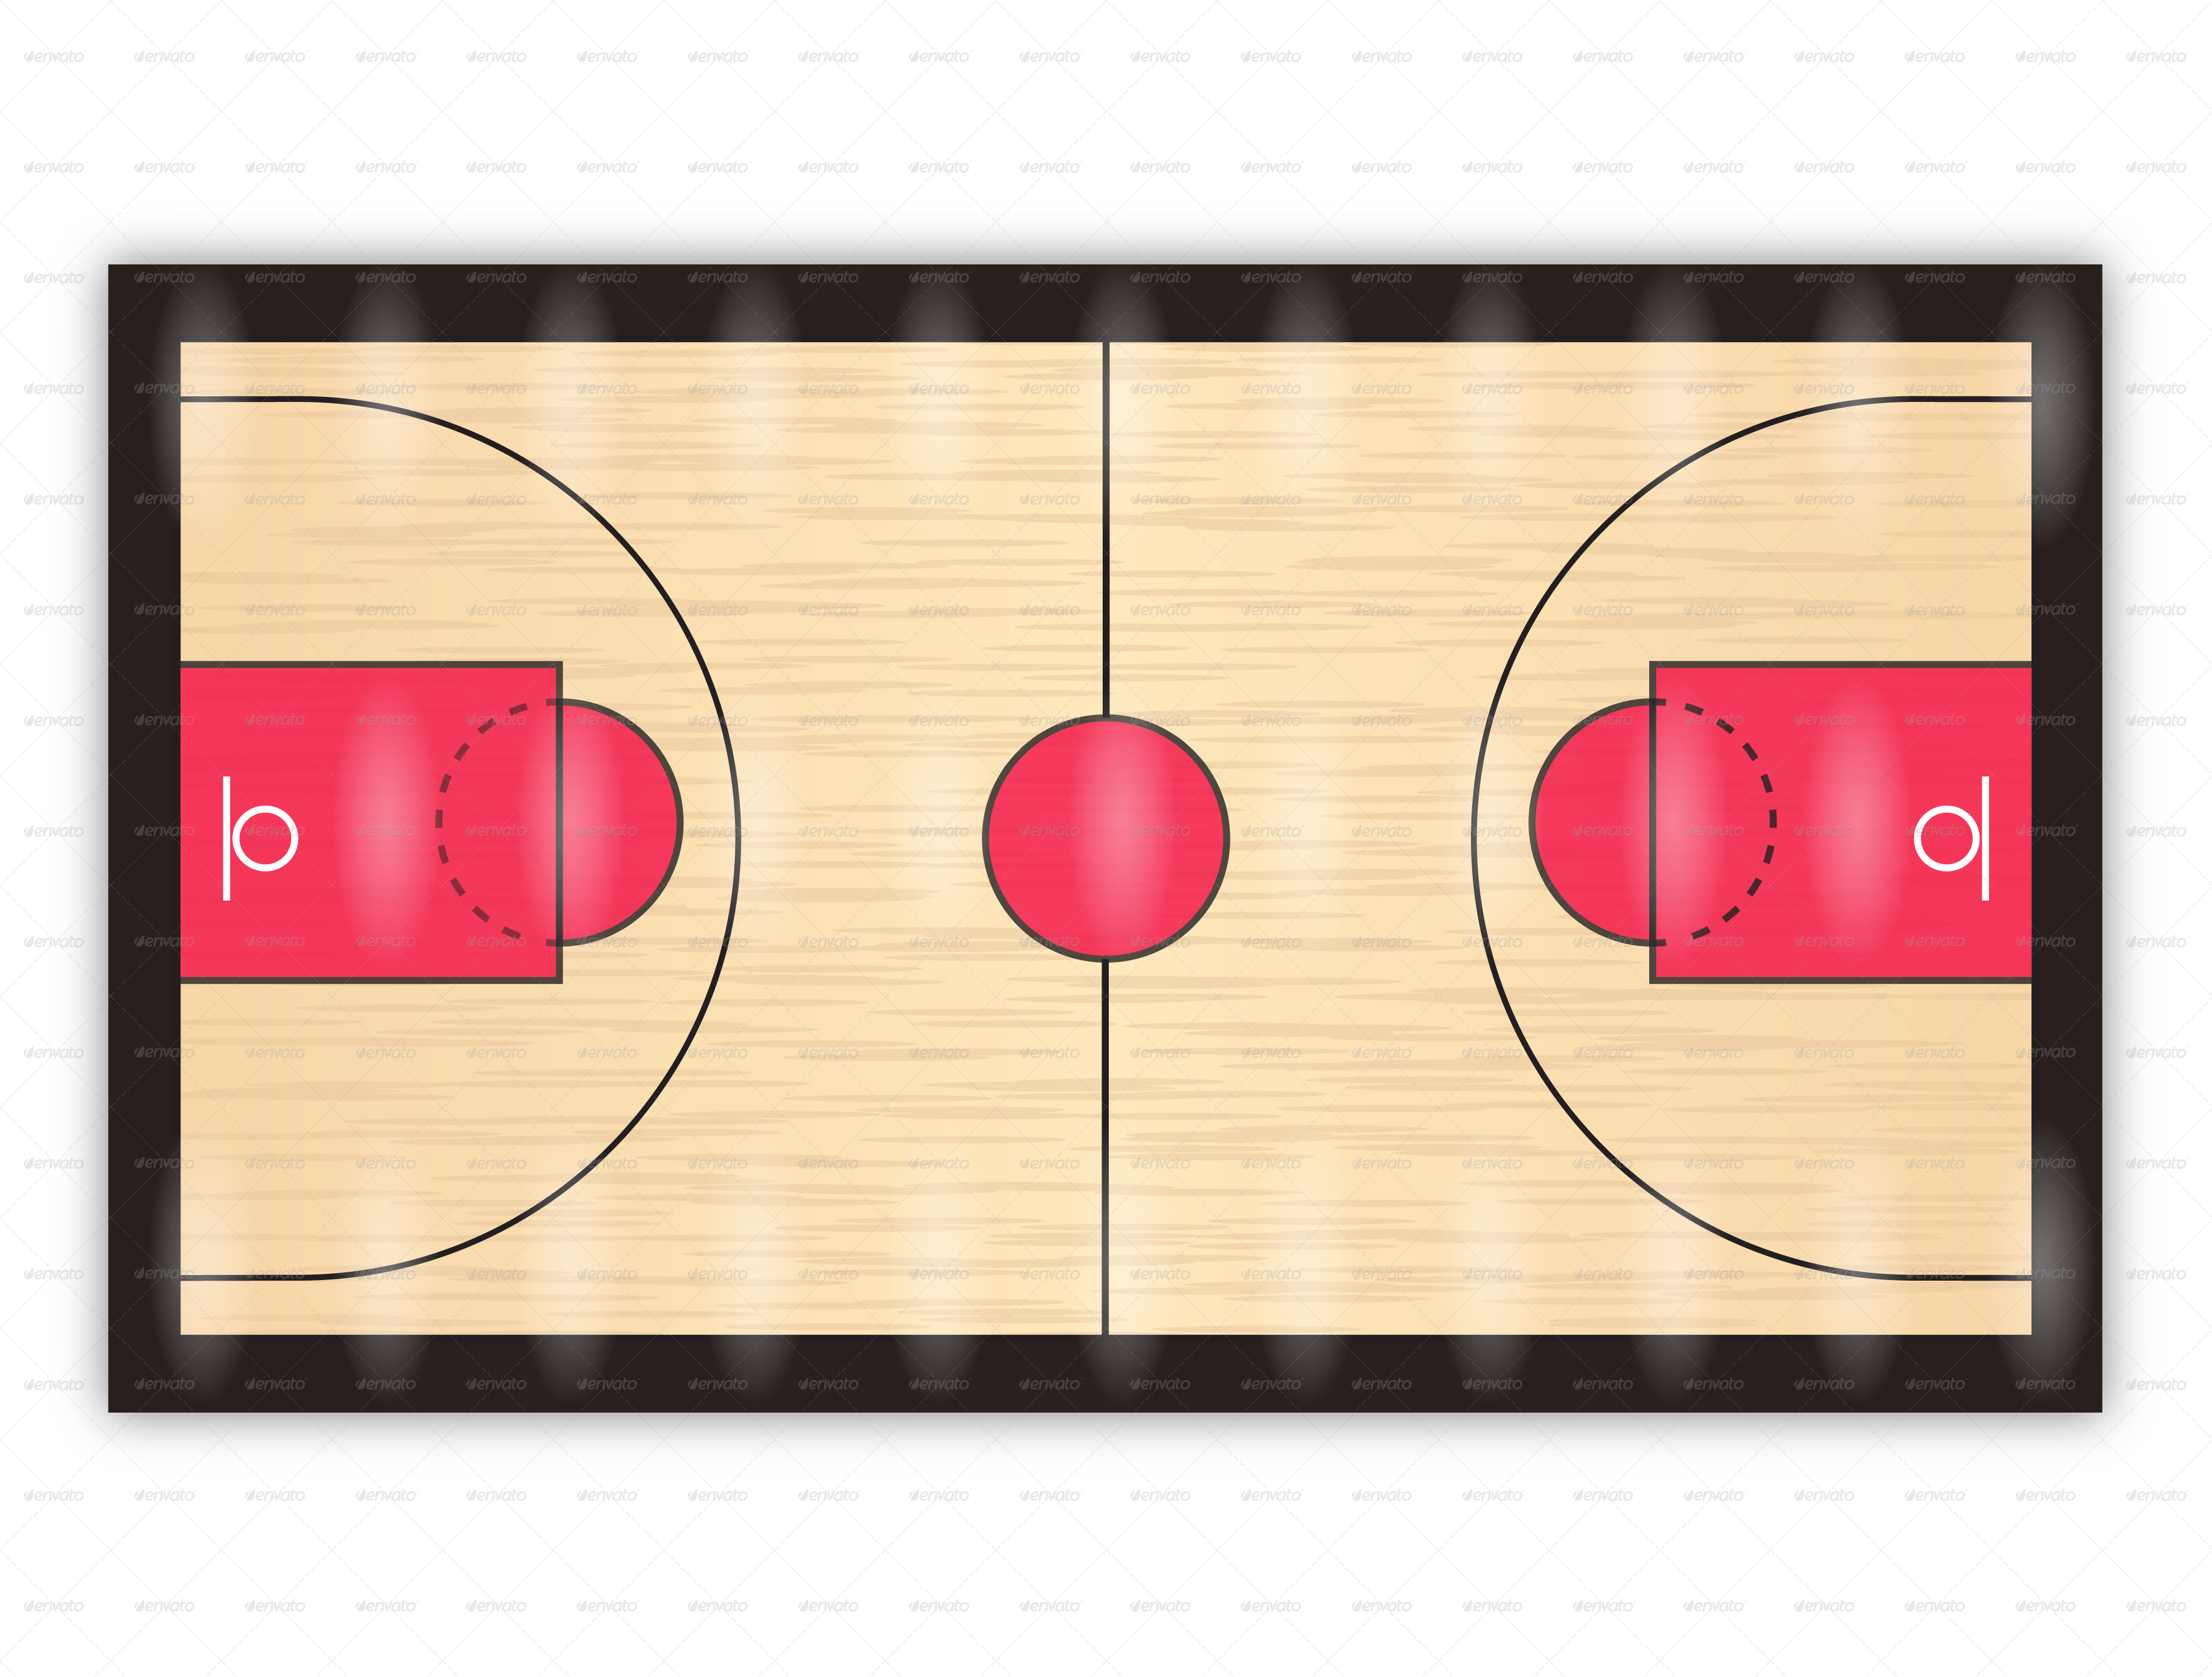 Clipart of basketball court freeuse download Basketball Court PNG HD Transparent Basketball Court HD.PNG Images ... freeuse download